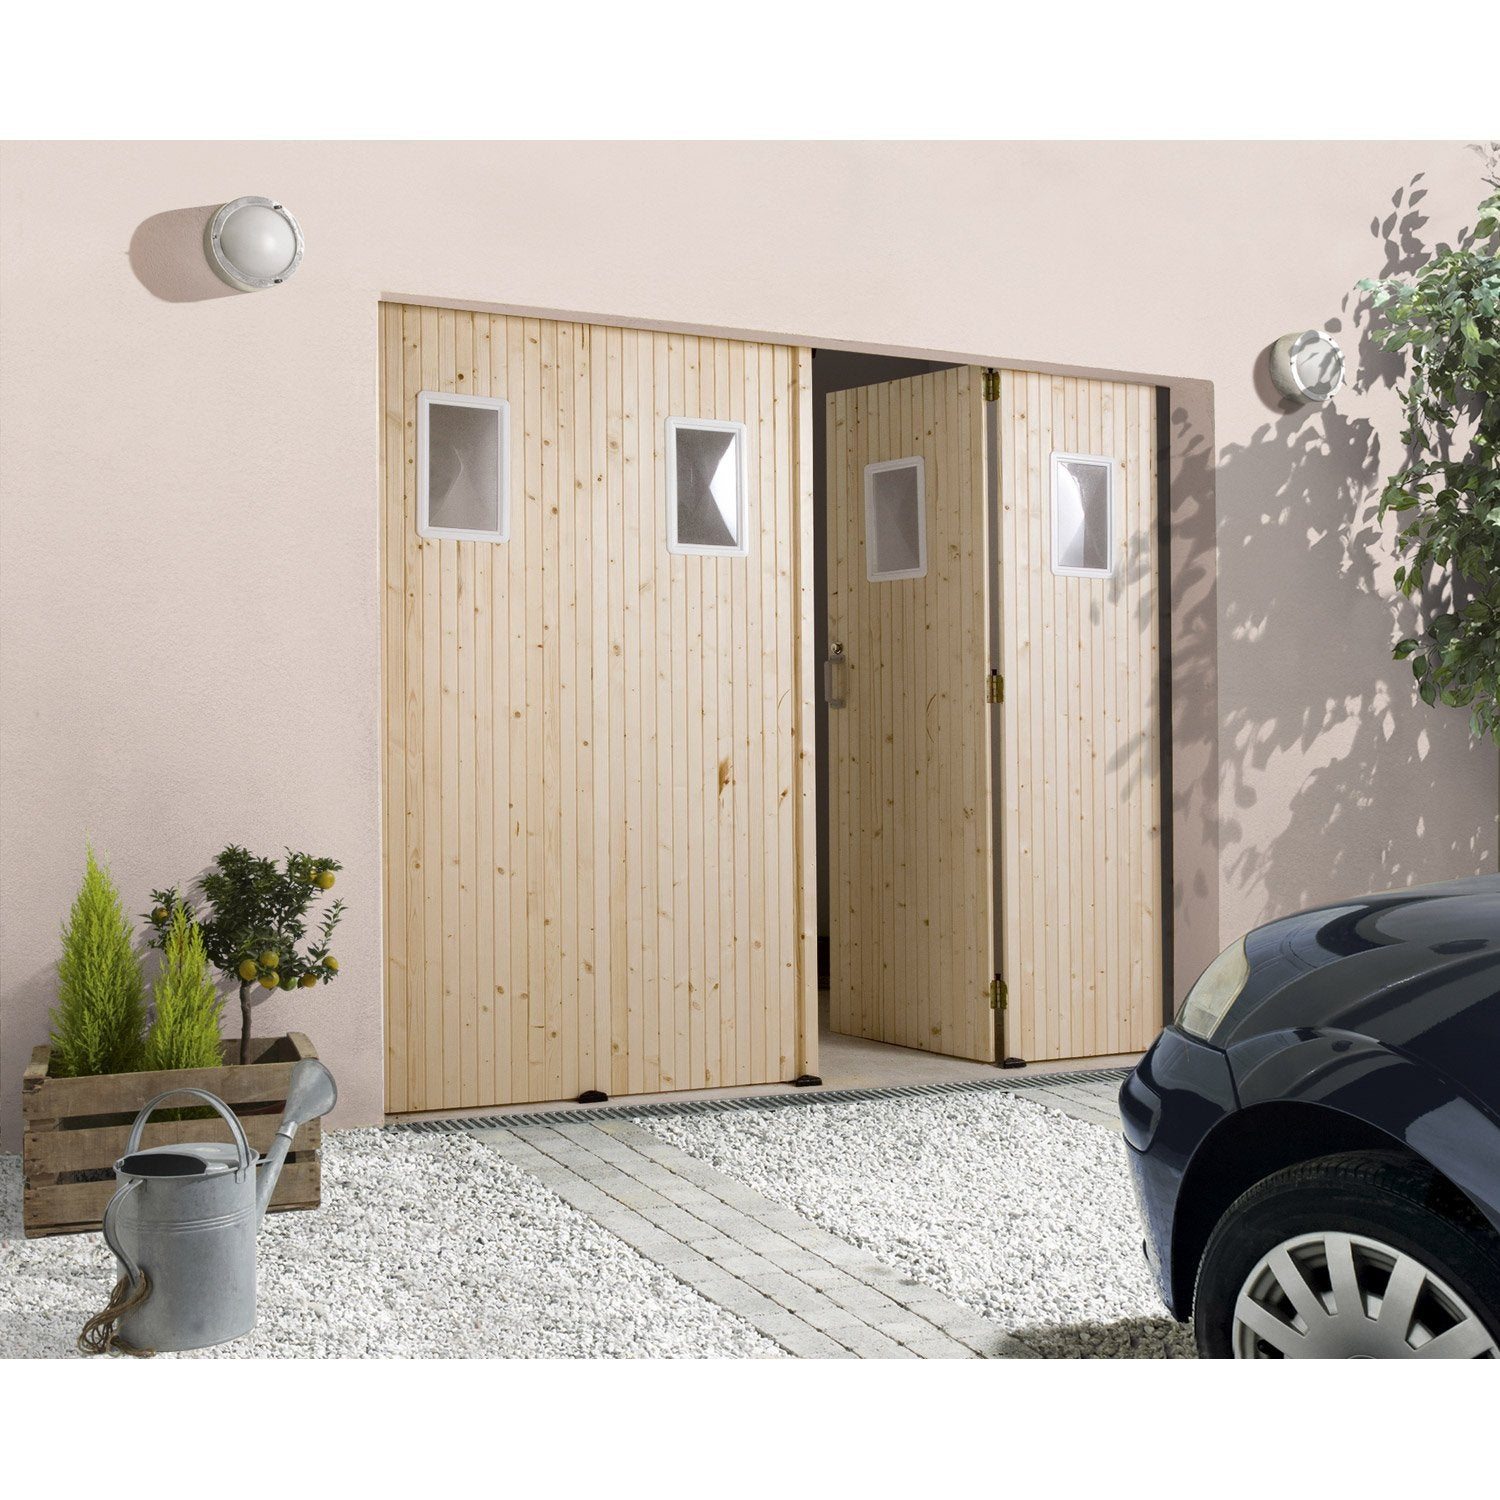 porte de garage pliante manuelle primo 200 x 240 cm avec. Black Bedroom Furniture Sets. Home Design Ideas